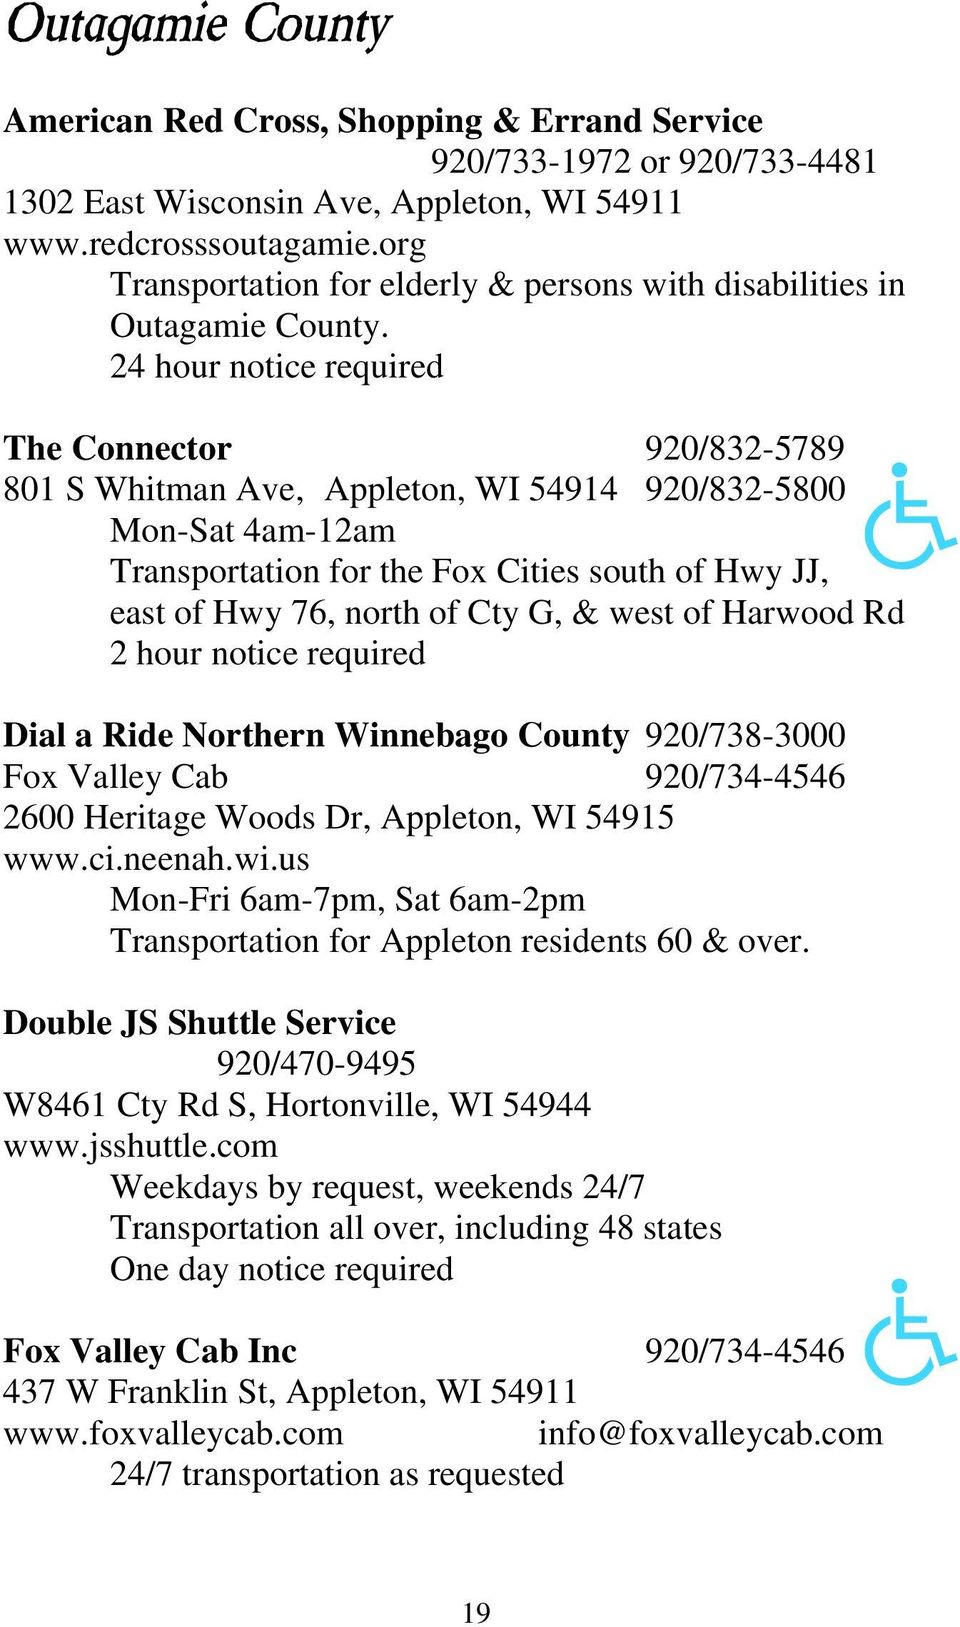 24 hour notice required The Connector 920/832-5789 801 S Whitman Ave, Appleton, WI 54914 920/832-5800 Mon-Sat 4am-12am Transportation for the Fox Cities south of Hwy JJ, east of Hwy 76, north of Cty